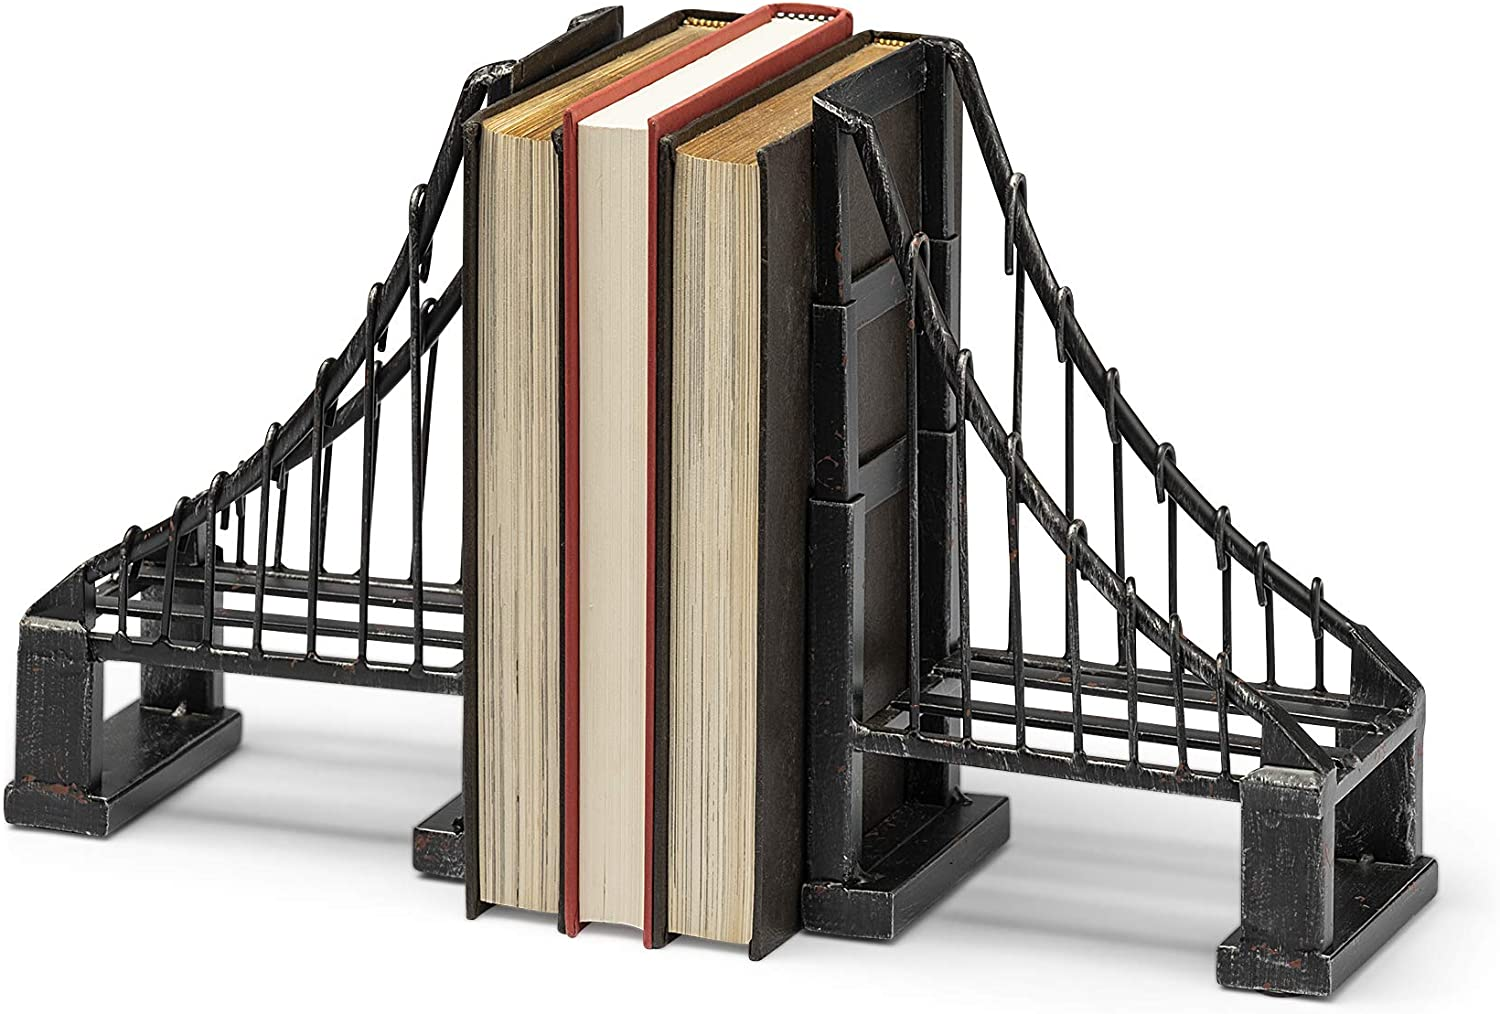 black suspension bridge book ends, best gifts for book lovers